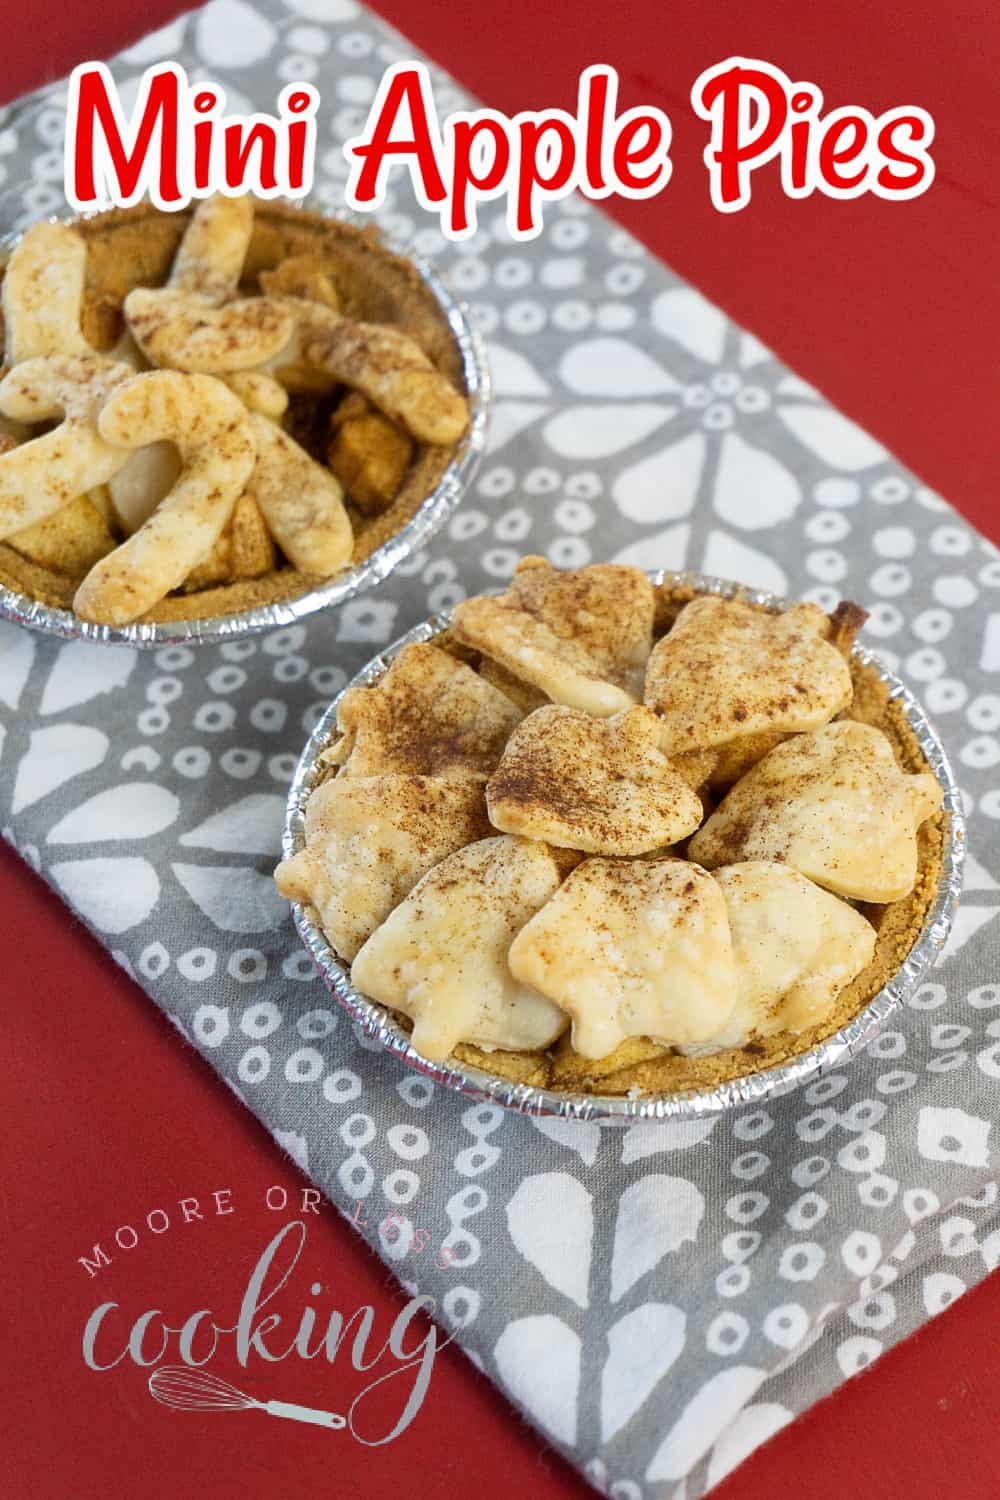 These adorable mini apple pies are perfect when you need a single-serve tasty treat. Just like a full-sized pie, the miniature crust holds deliciously spiced bites of fresh apples that are topped with holiday-shaped pie crust cutouts. via @Mooreorlesscook